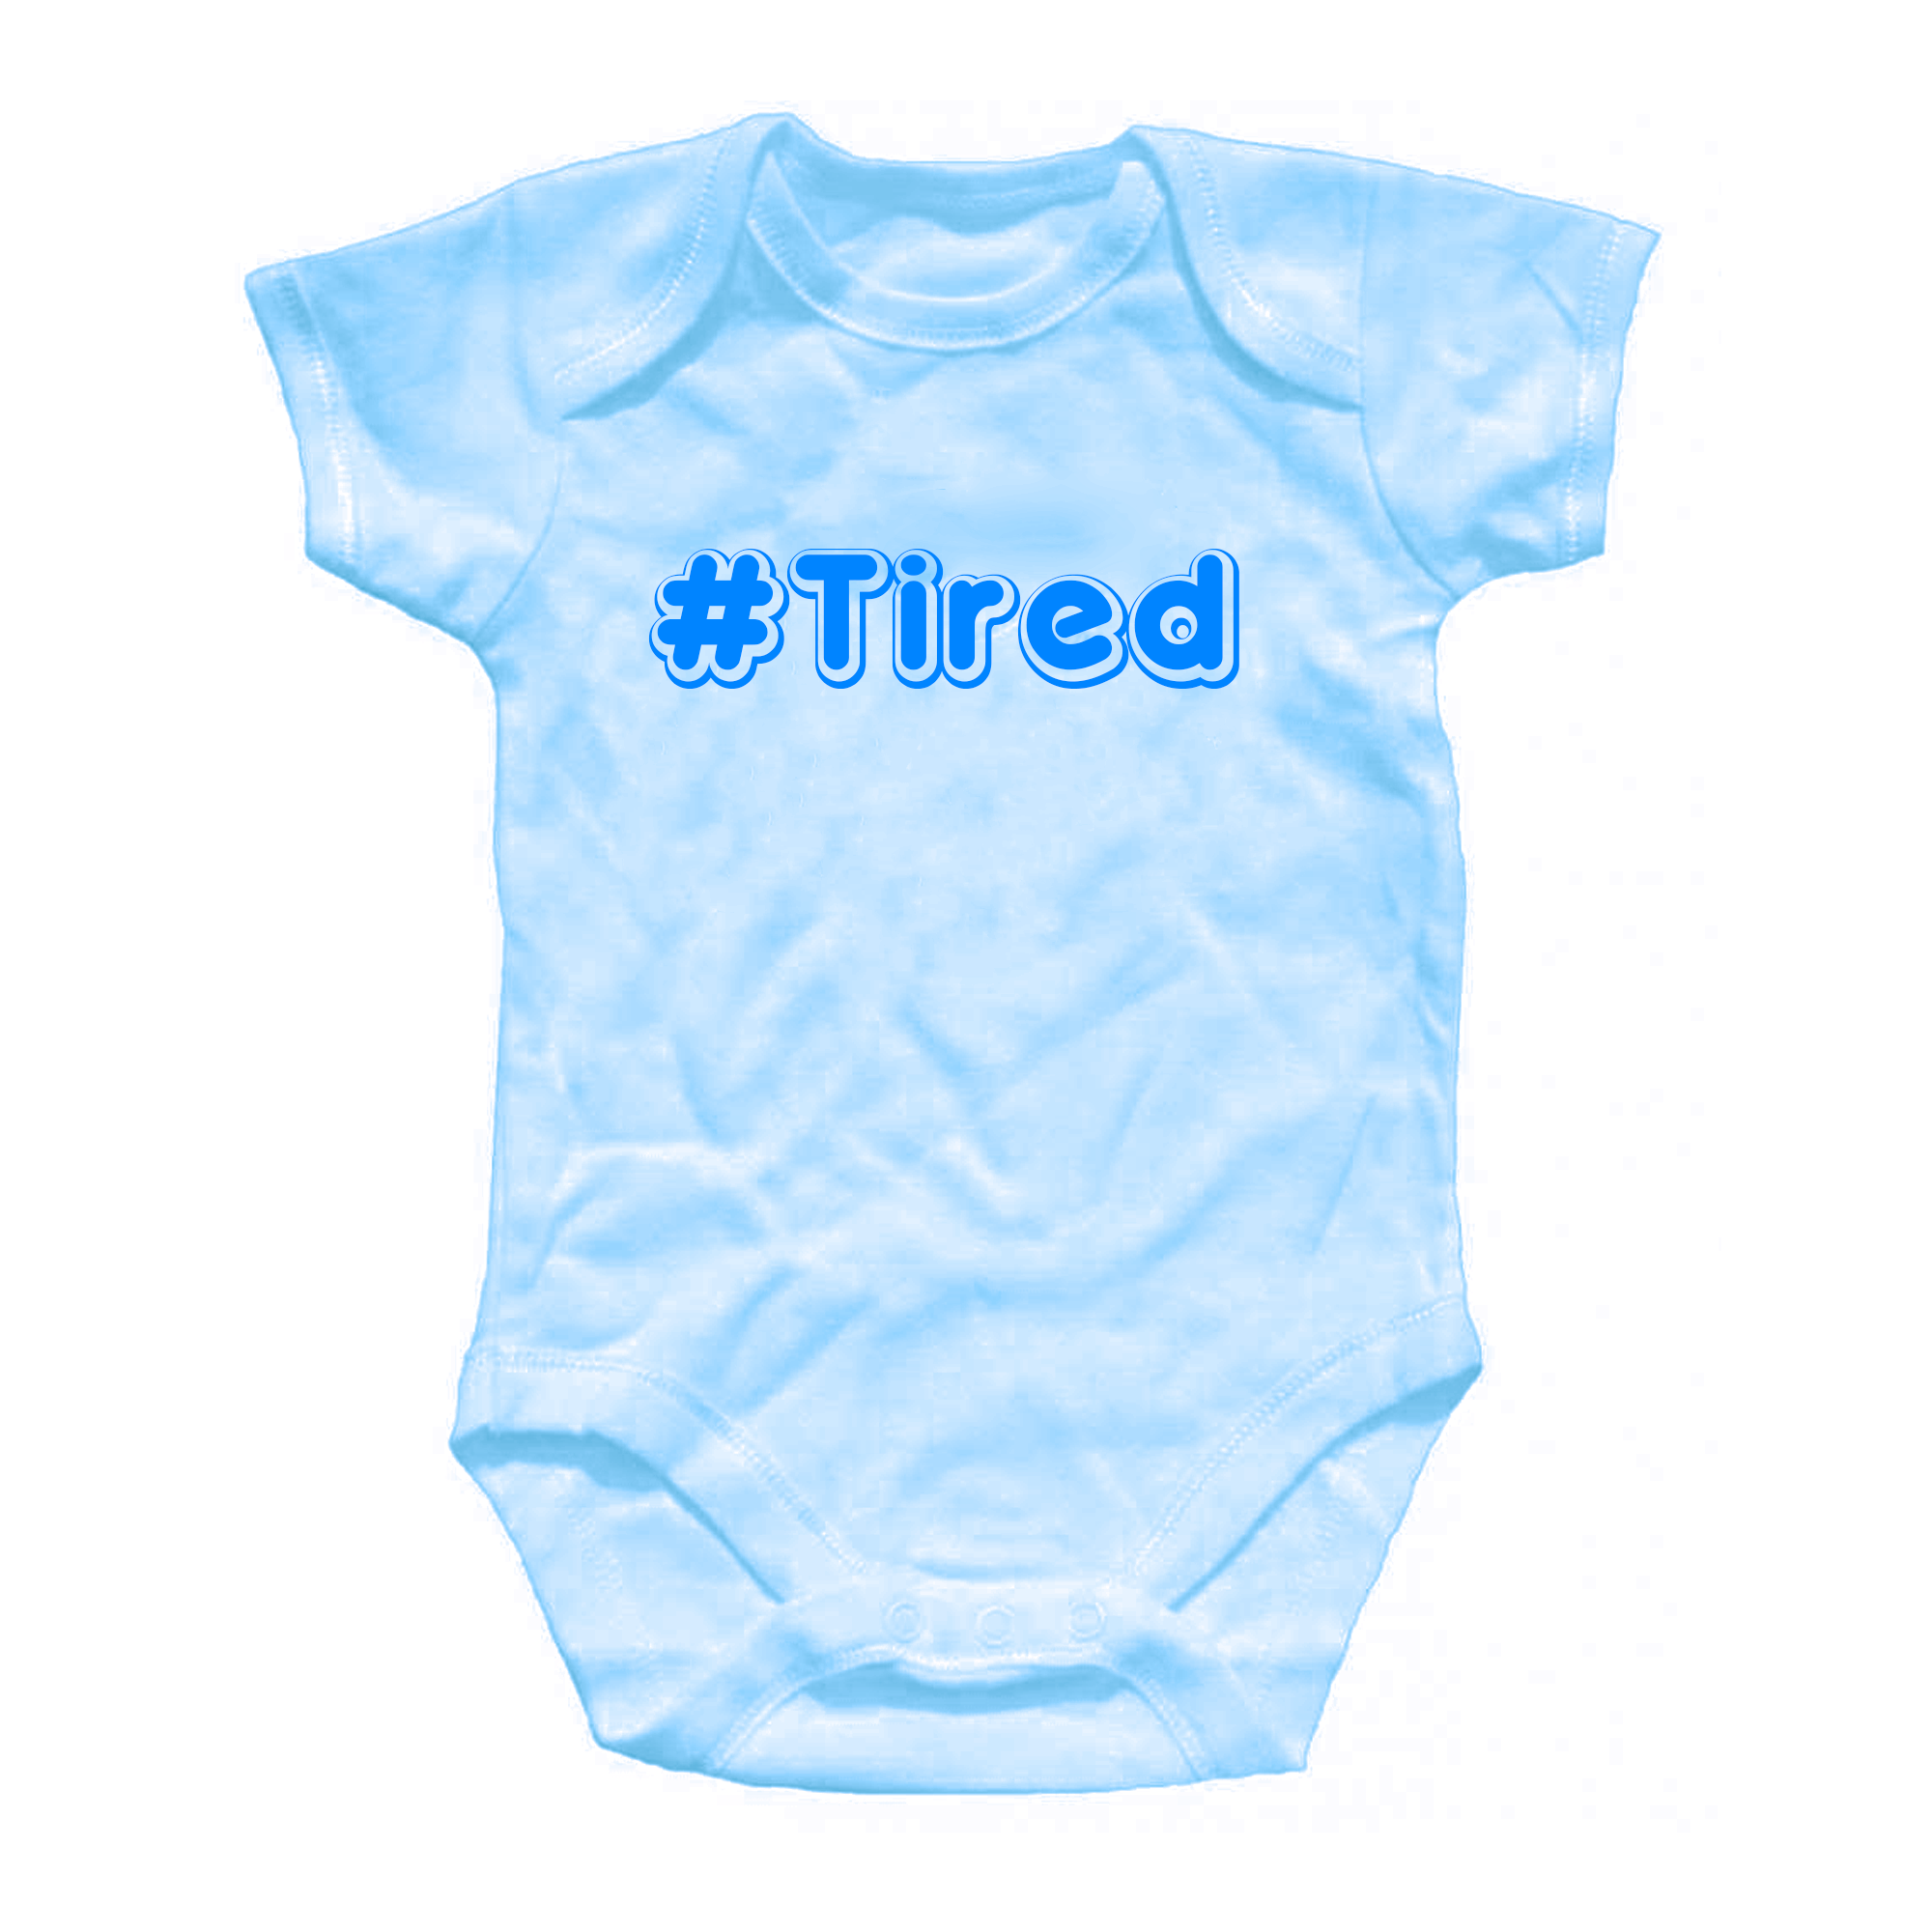 Personalised Tired Baby Grow Shower Gift Onesie All in One Blue Pink ...